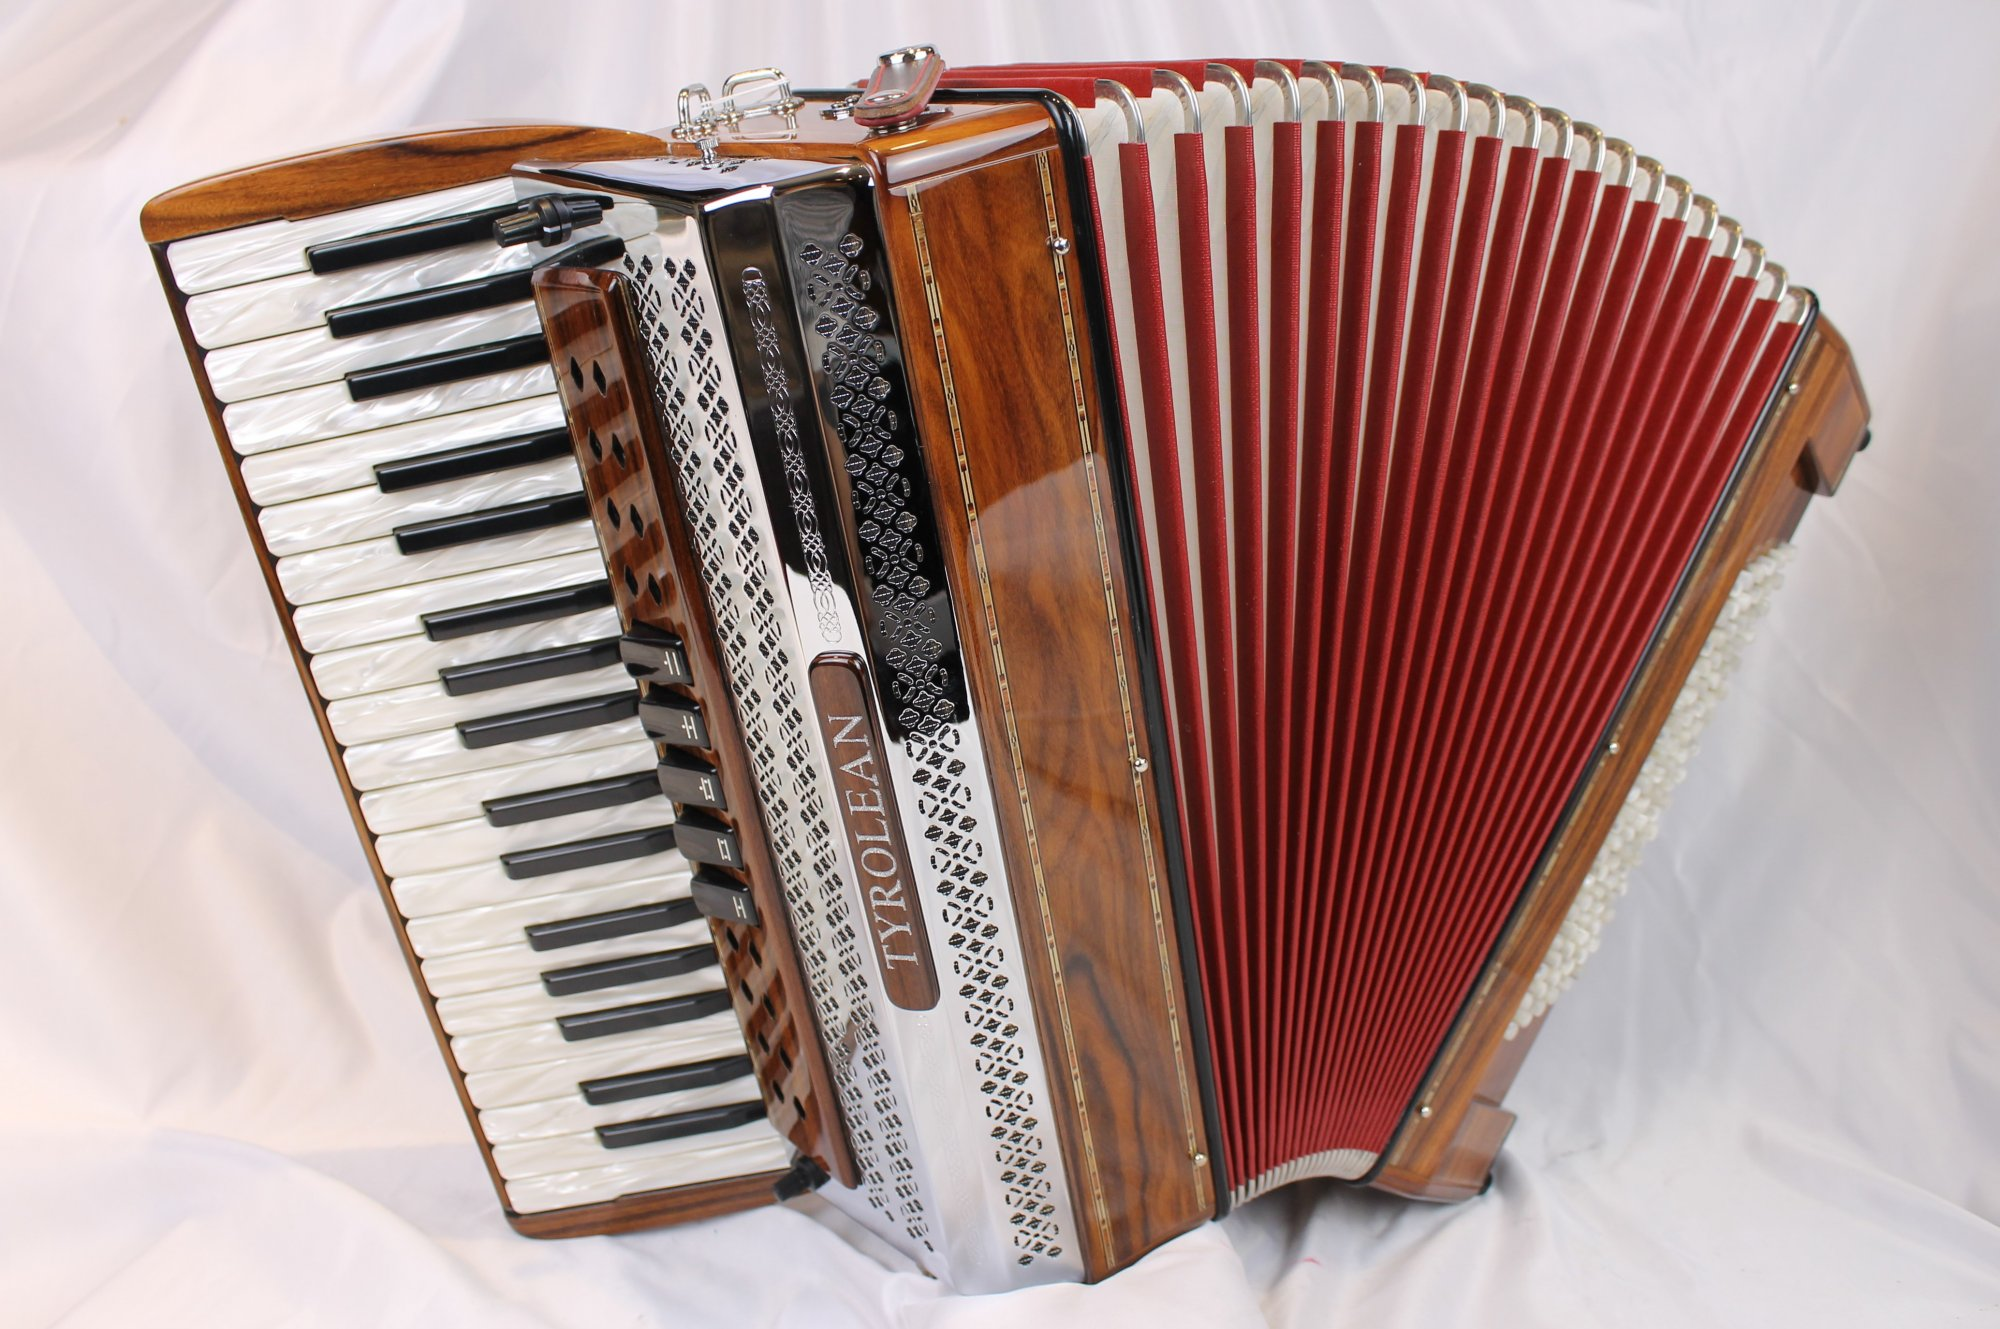 NEW Rosewood Beltuna Tyrolean III Helikon Piano Accordion LMM 37 96